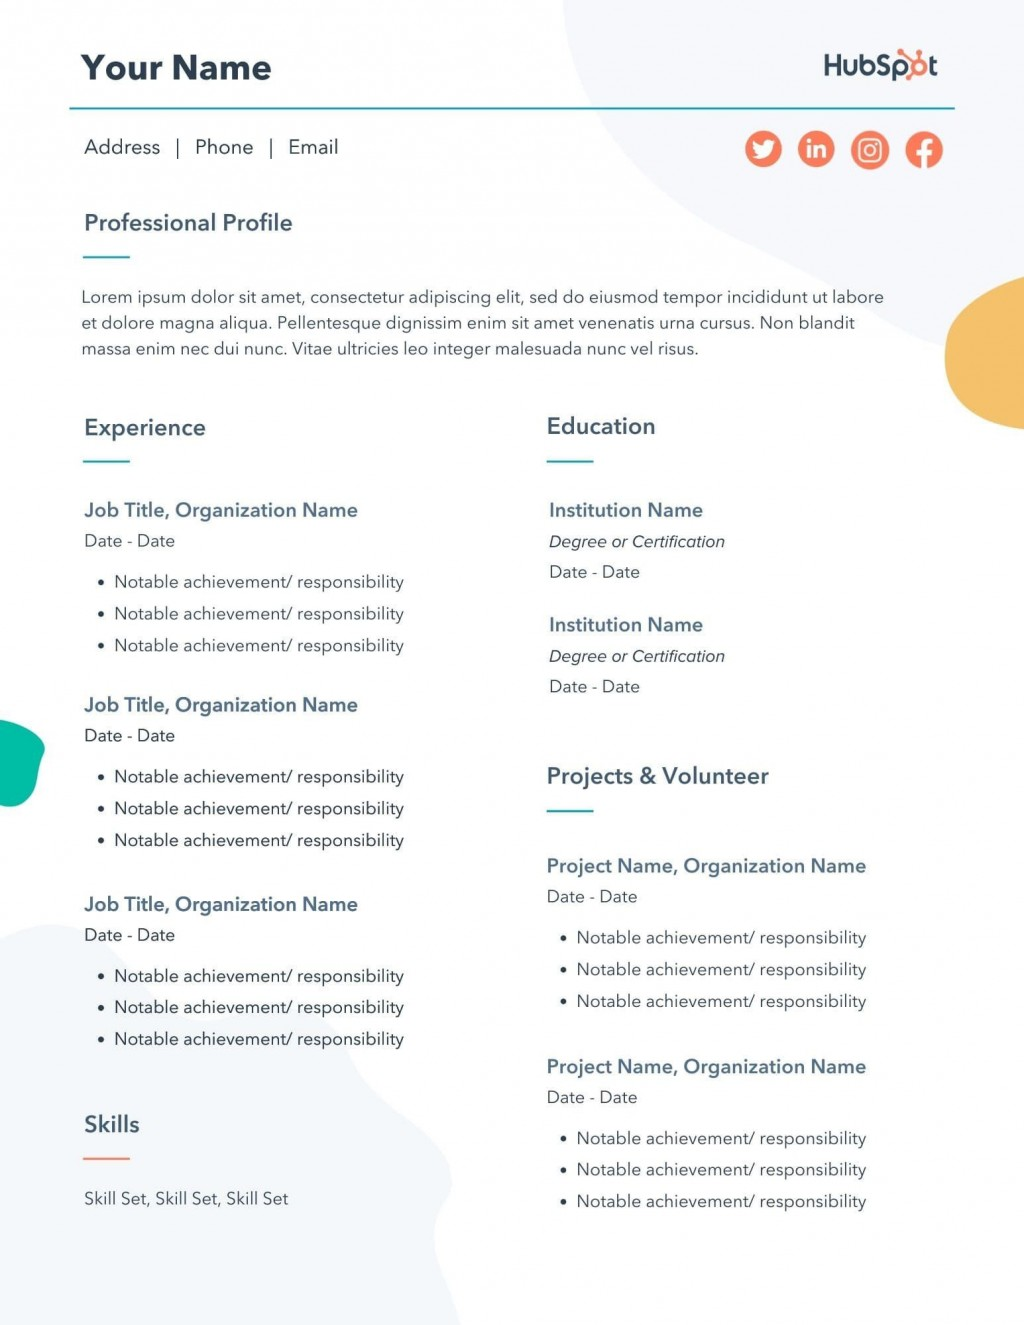 008 Dreaded Professional Resume Template Word Free Download Idea  Cv 2020 With PhotoLarge